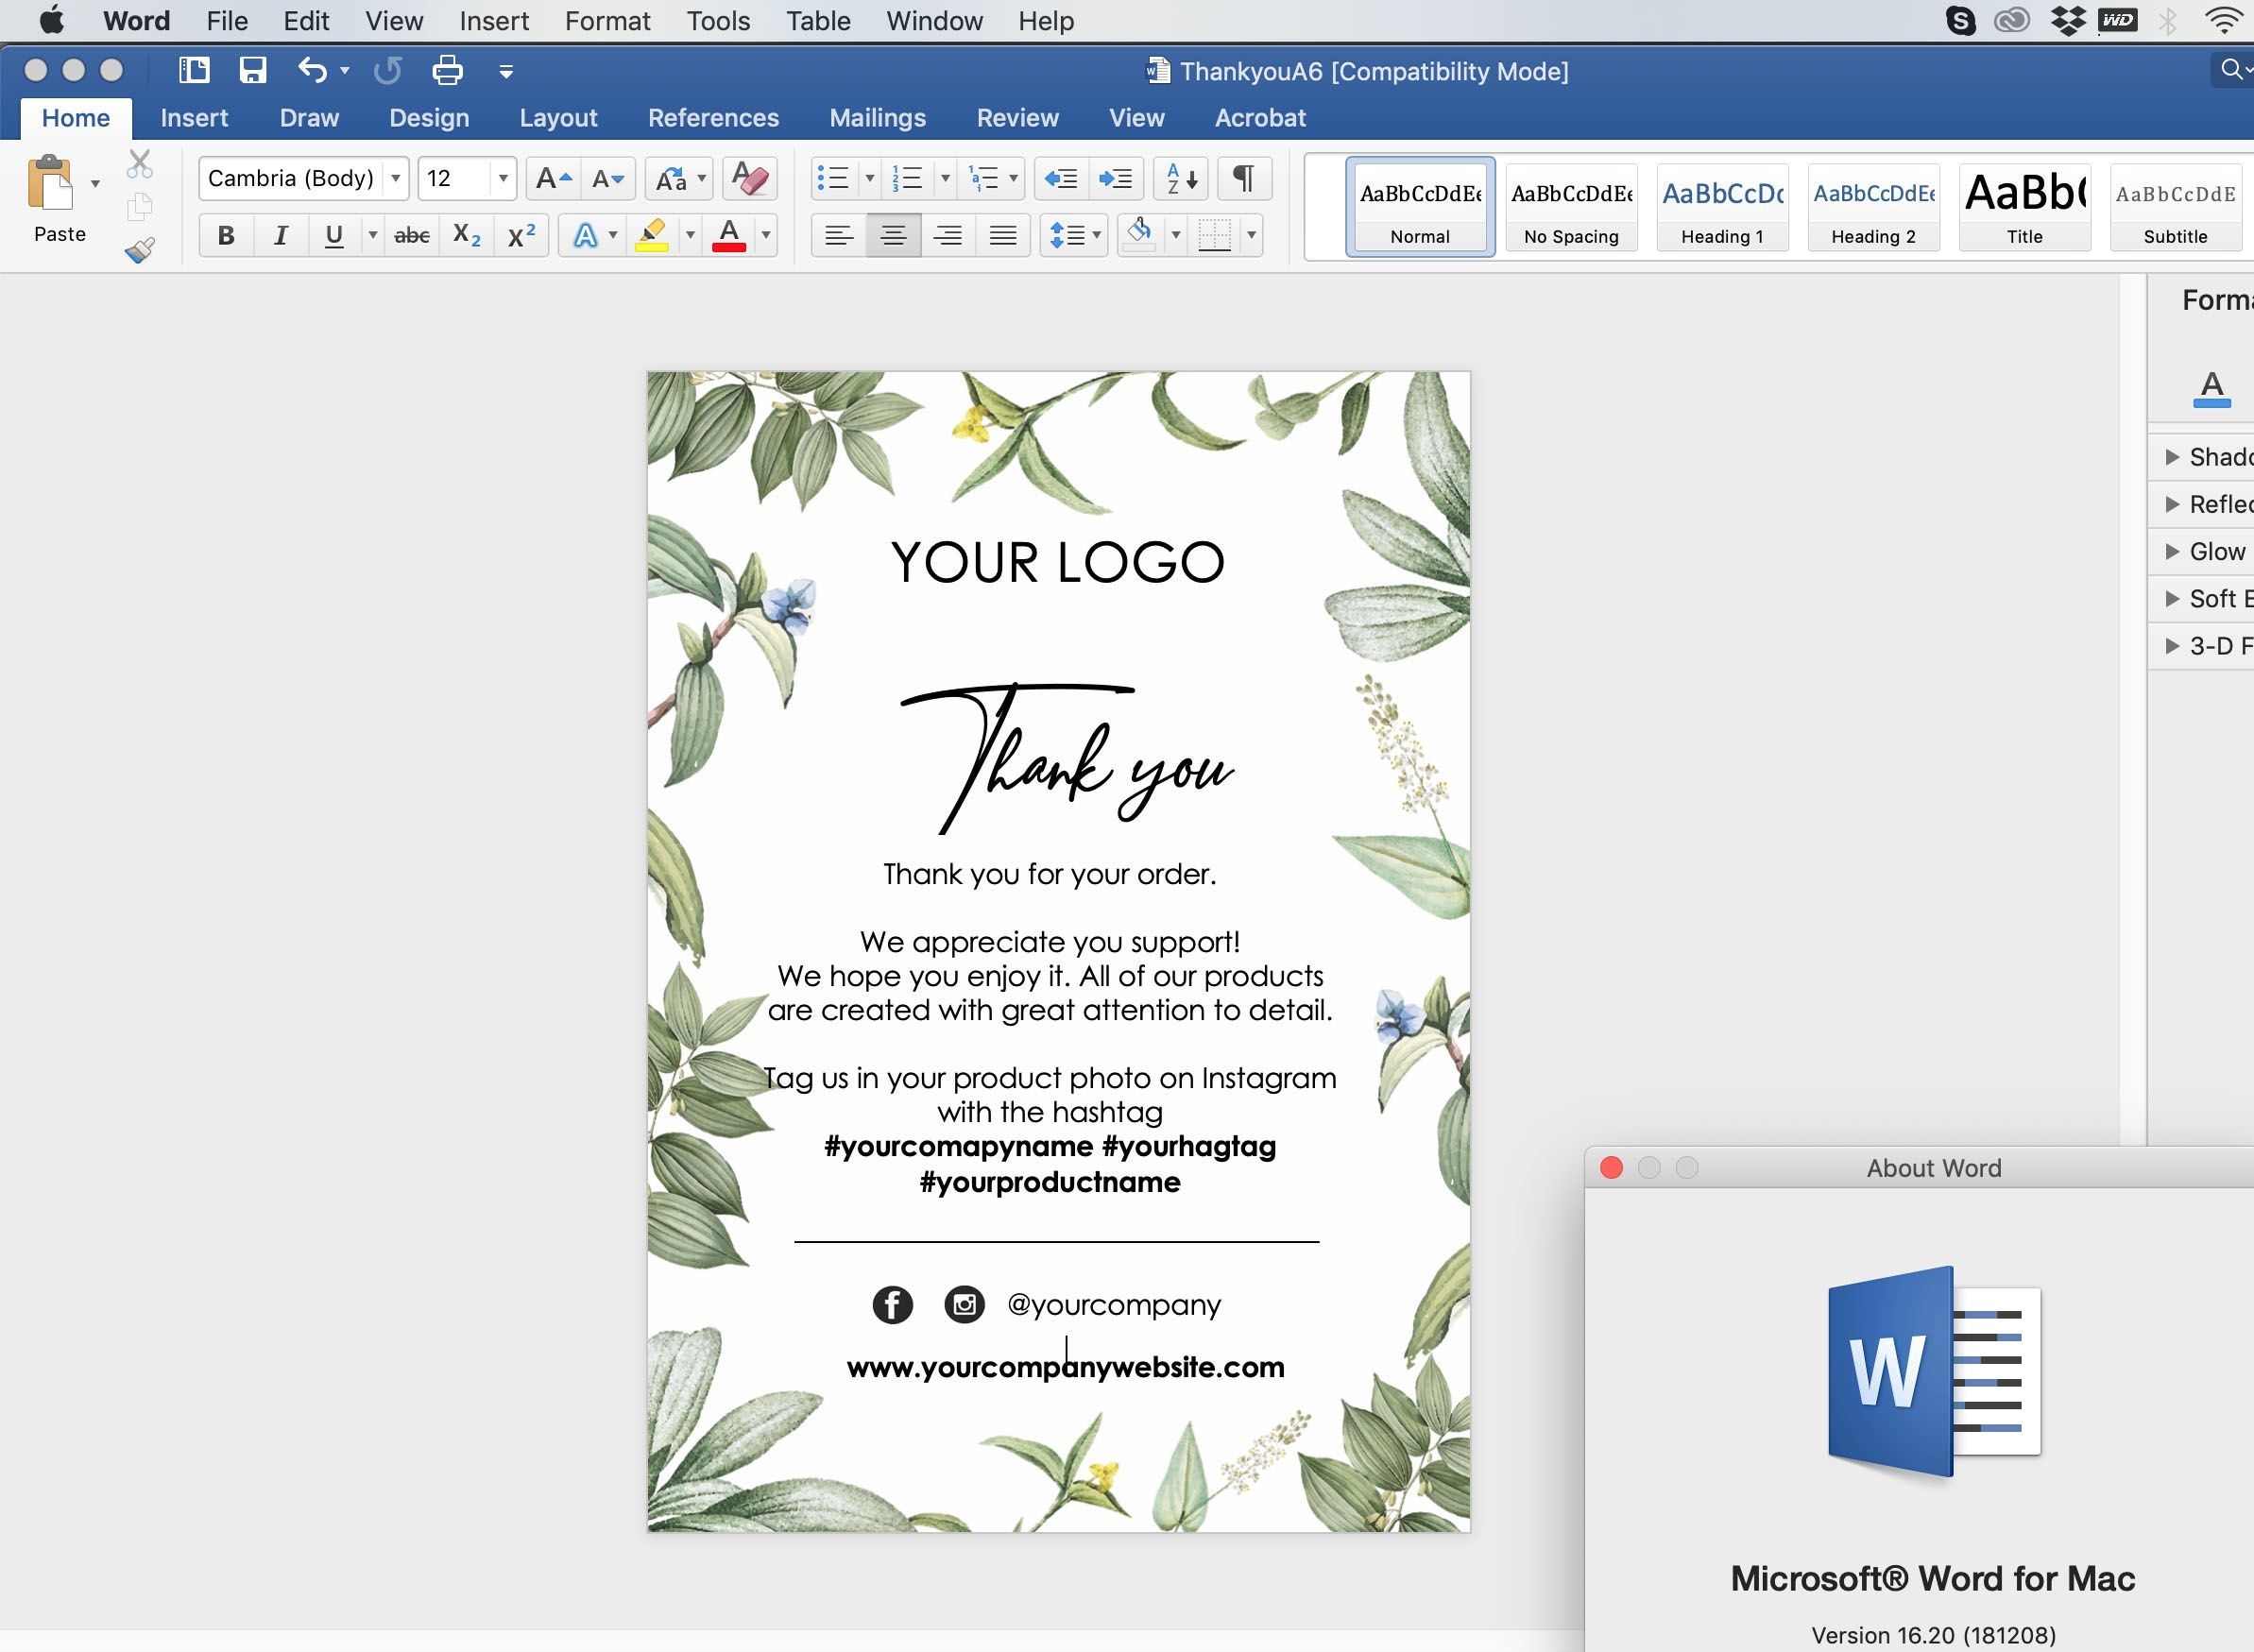 009 Awesome Thank You Note Template Microsoft Word High Resolution  Card Free Funeral LetterFull